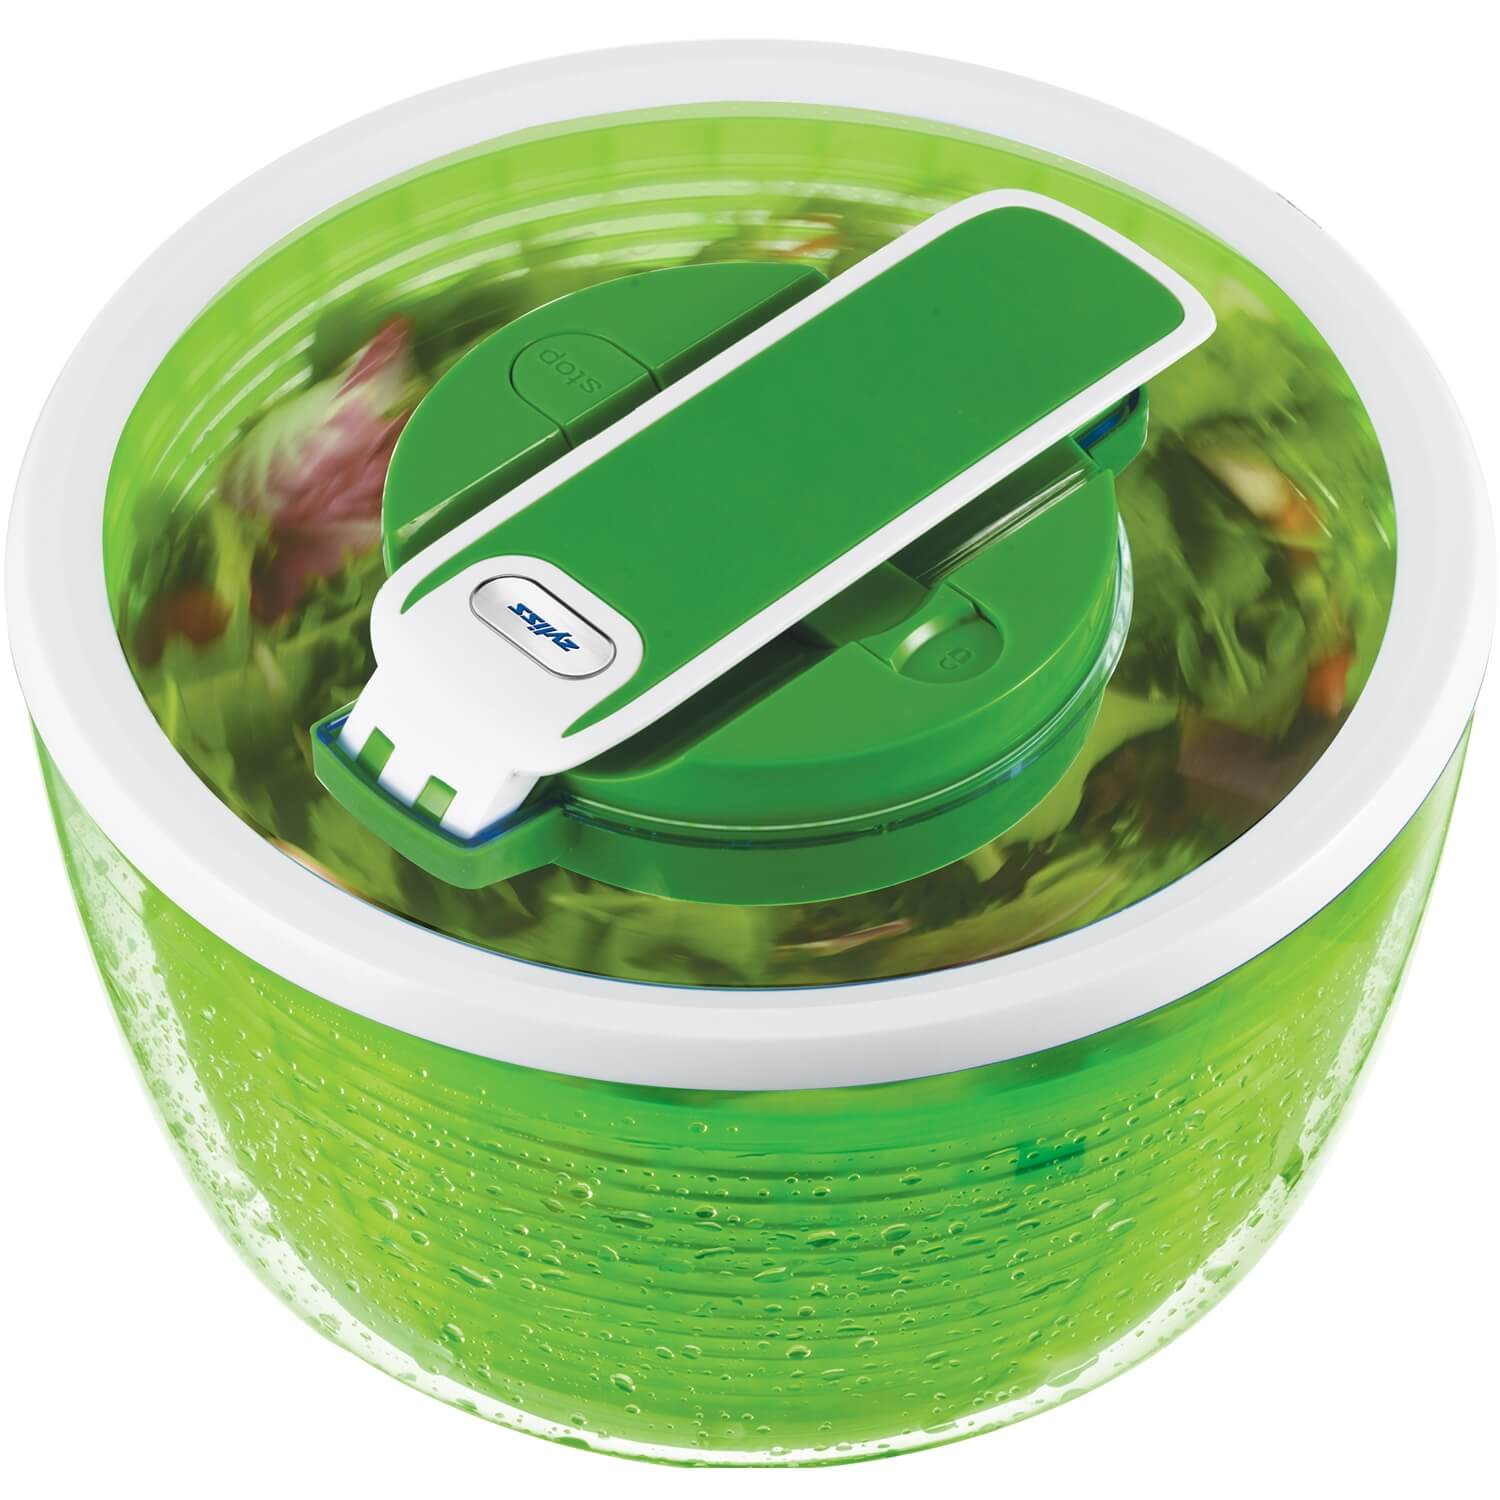 Image of Zyliss Swift Dry Salad Spinner, Green